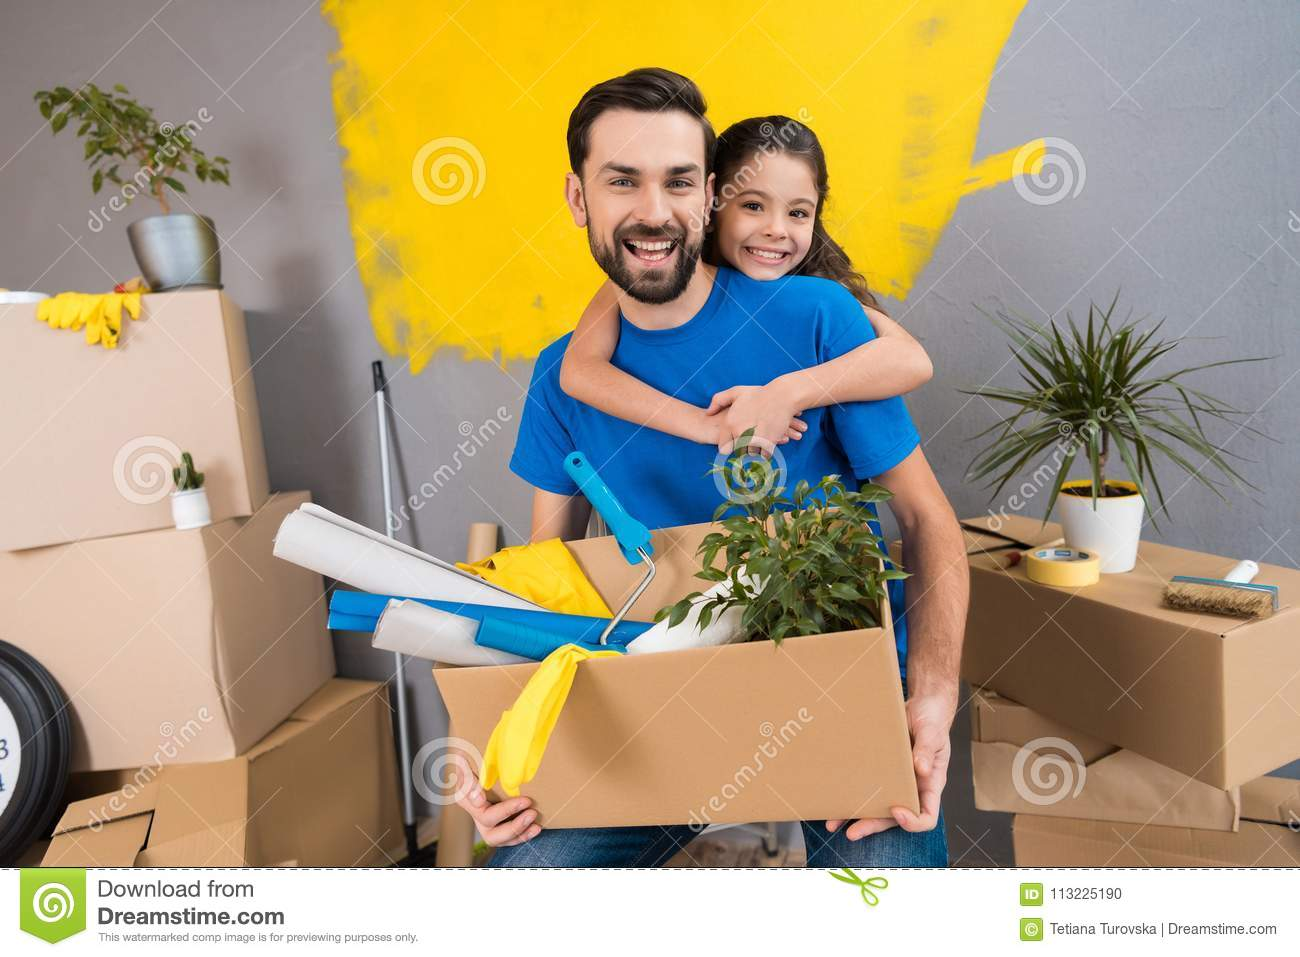 Little daughter hugs her father, who keeps box of tools and things. Family does house repairs together.